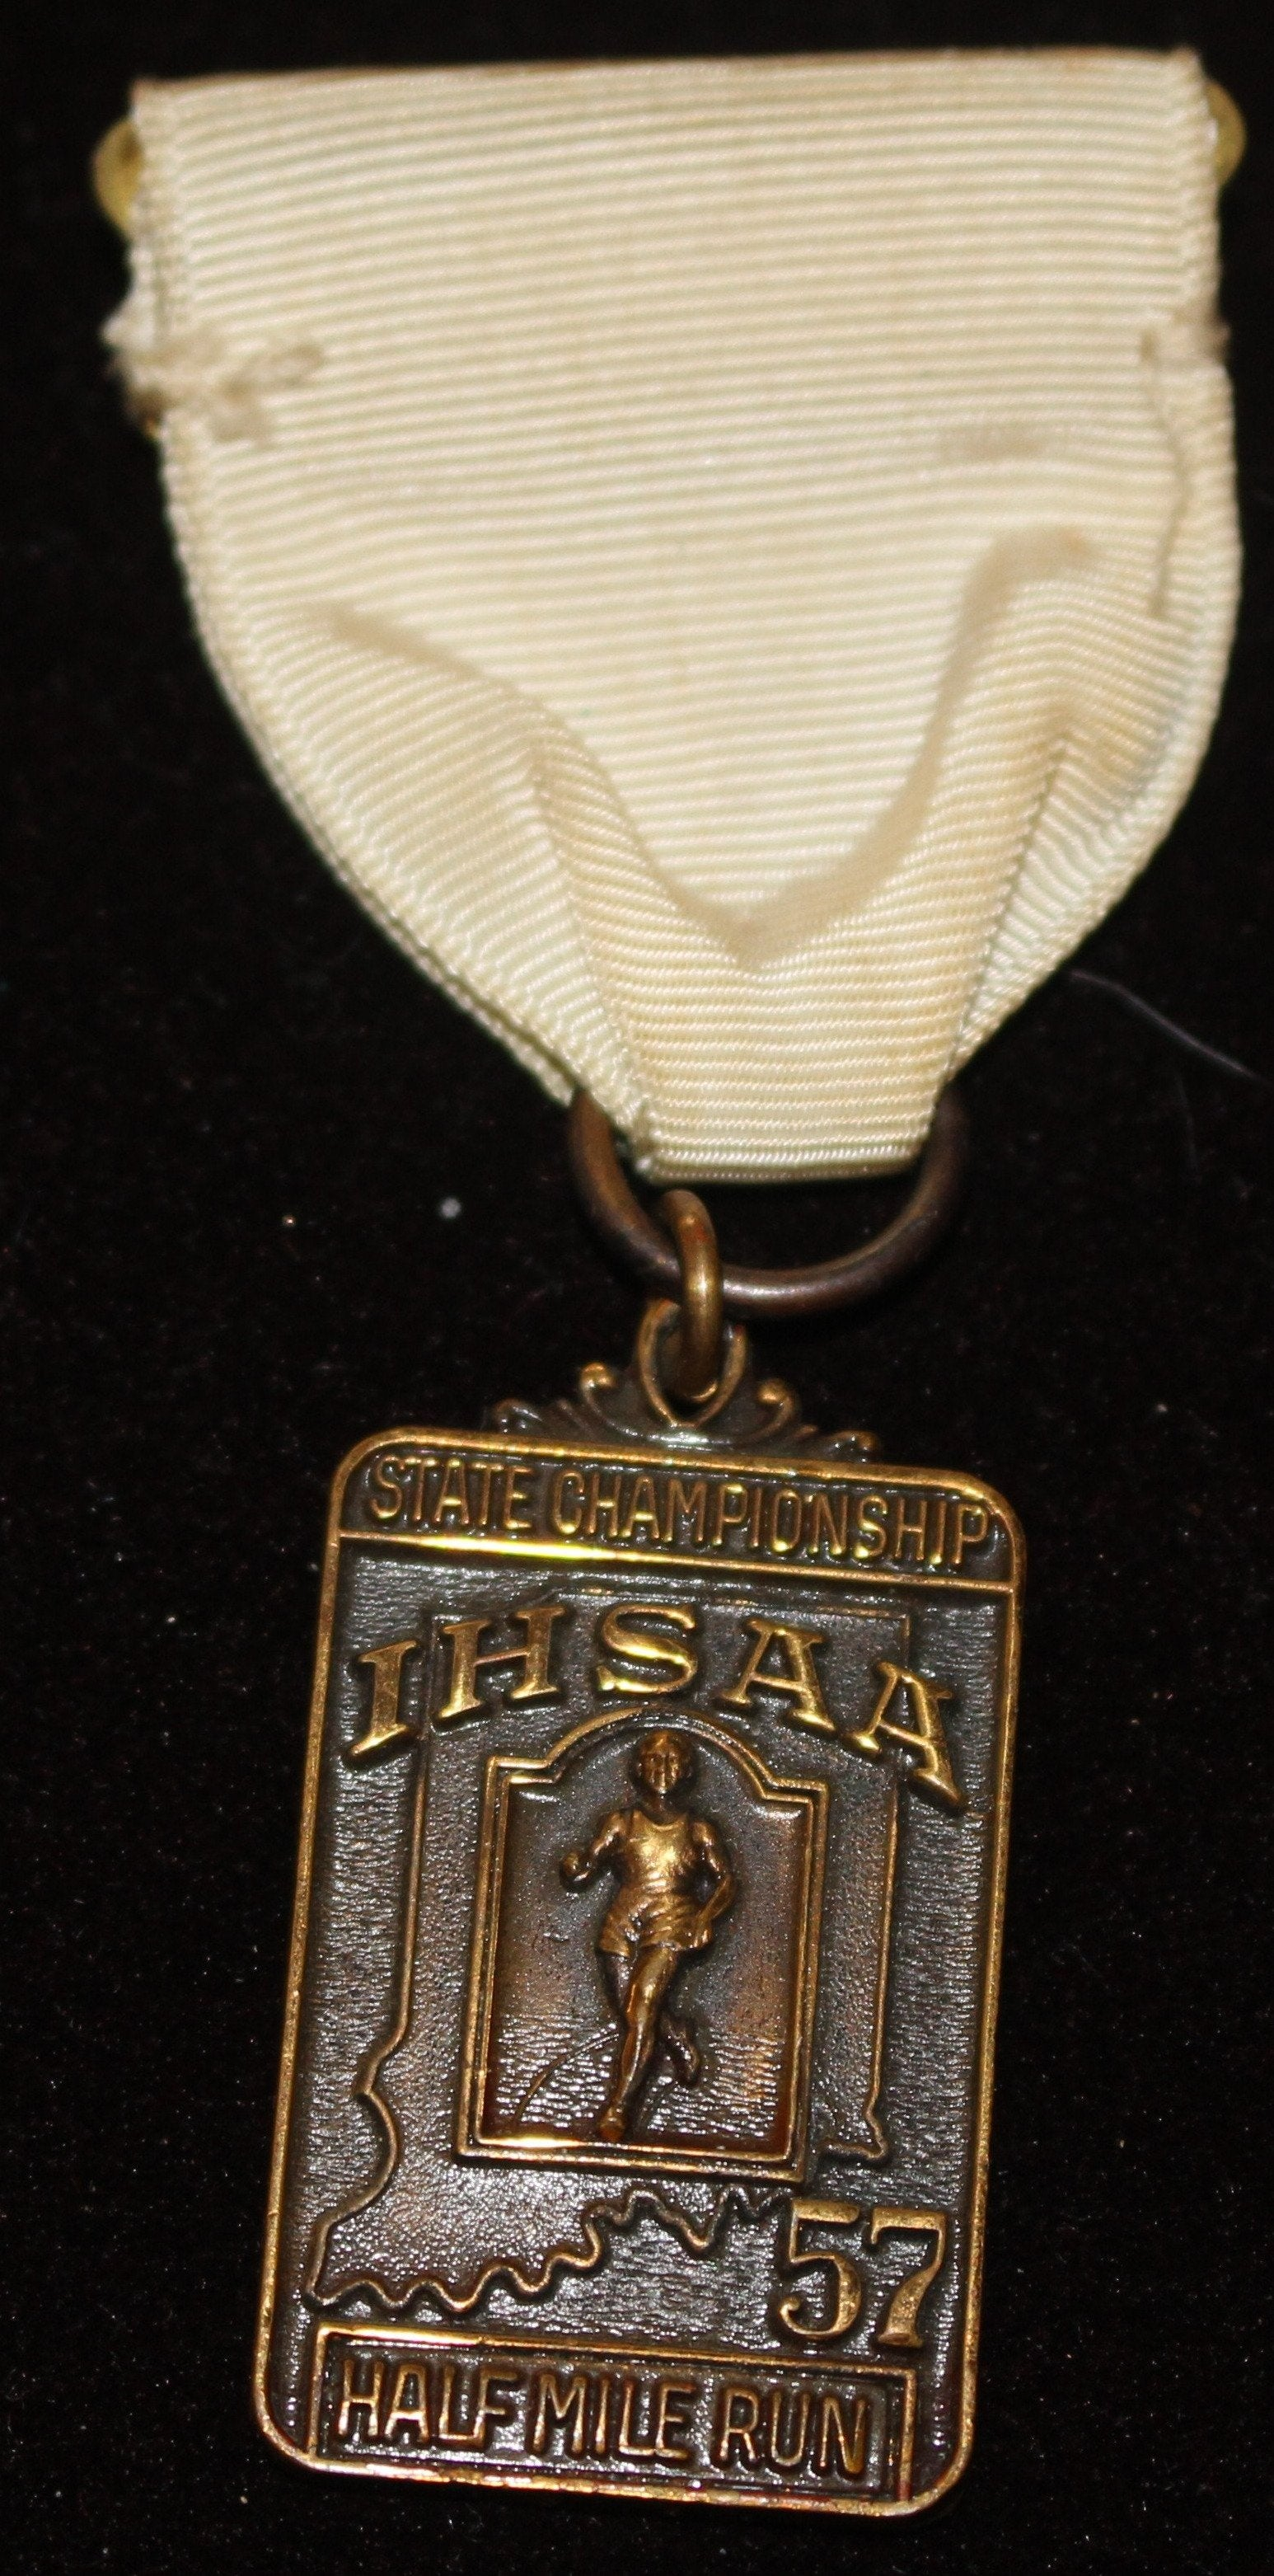 1957 Indiana High School Track & Field Half Mile 3rd Place Medal - Vintage Indy Sports